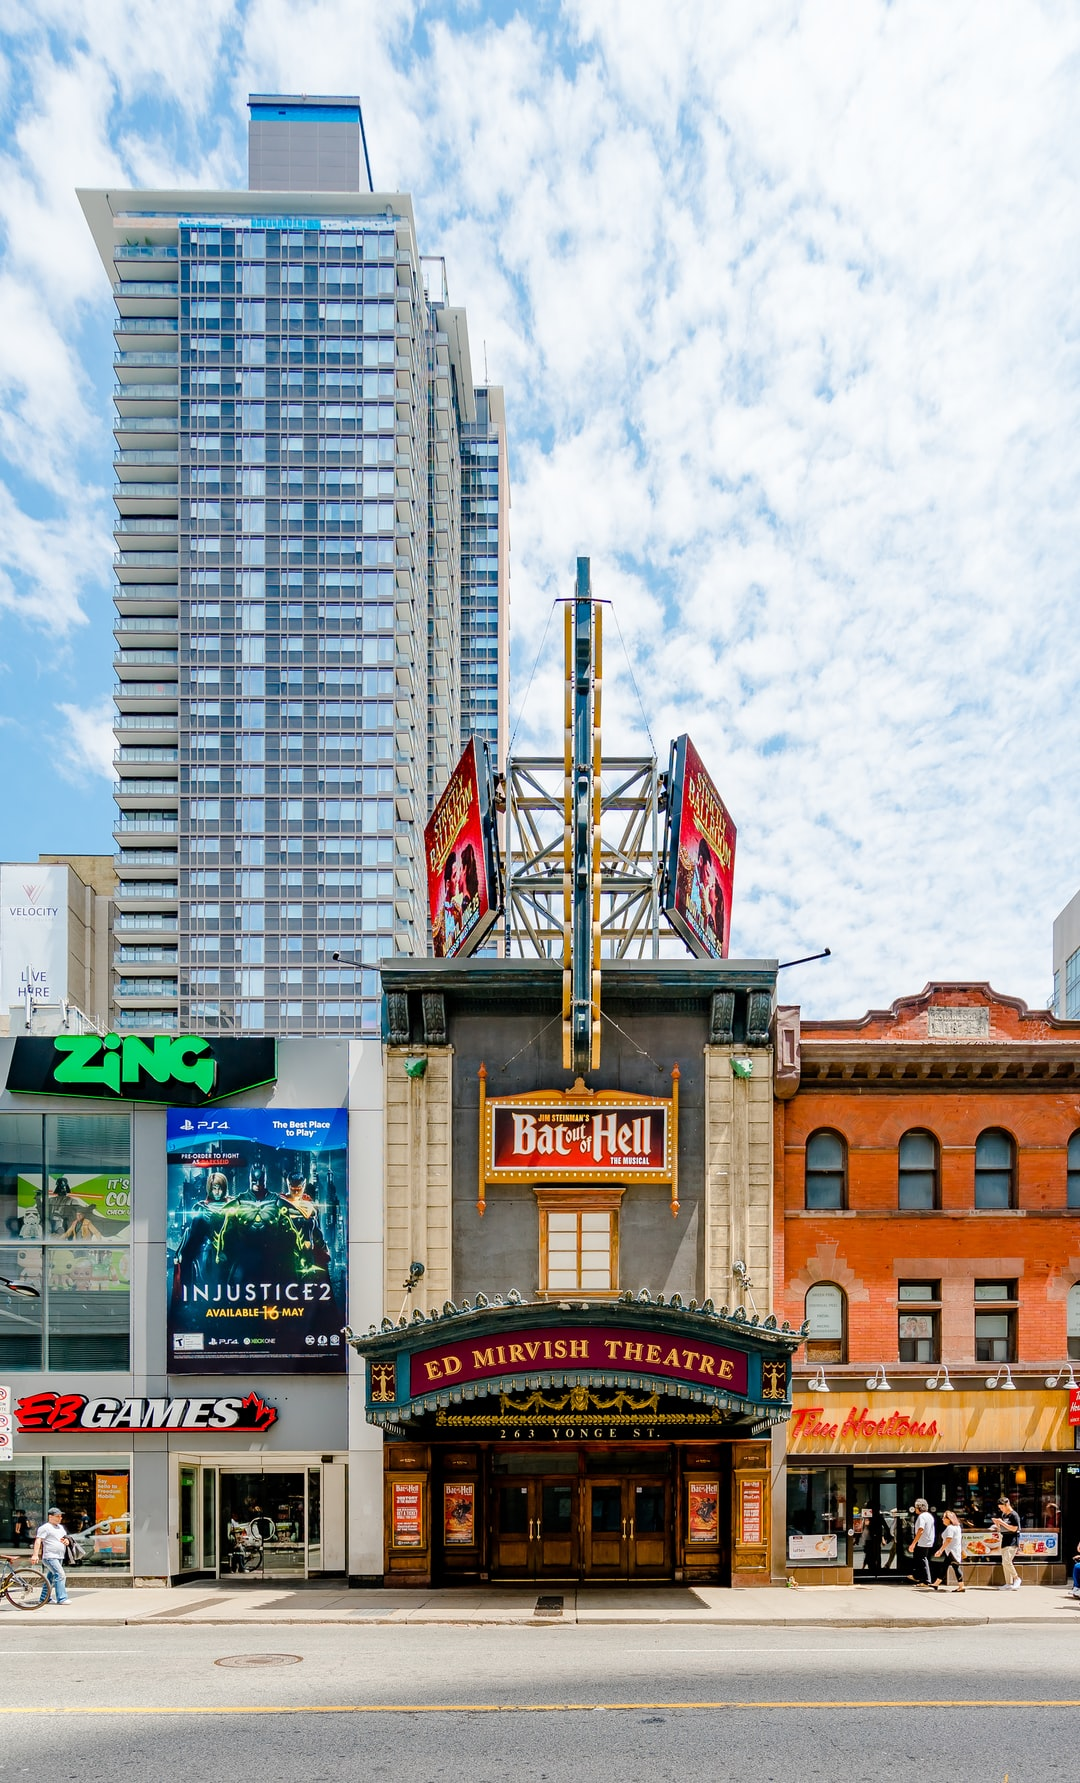 A verticle streetscape featuring Ed Mirvish Theatre on Yonge Street in Toronto